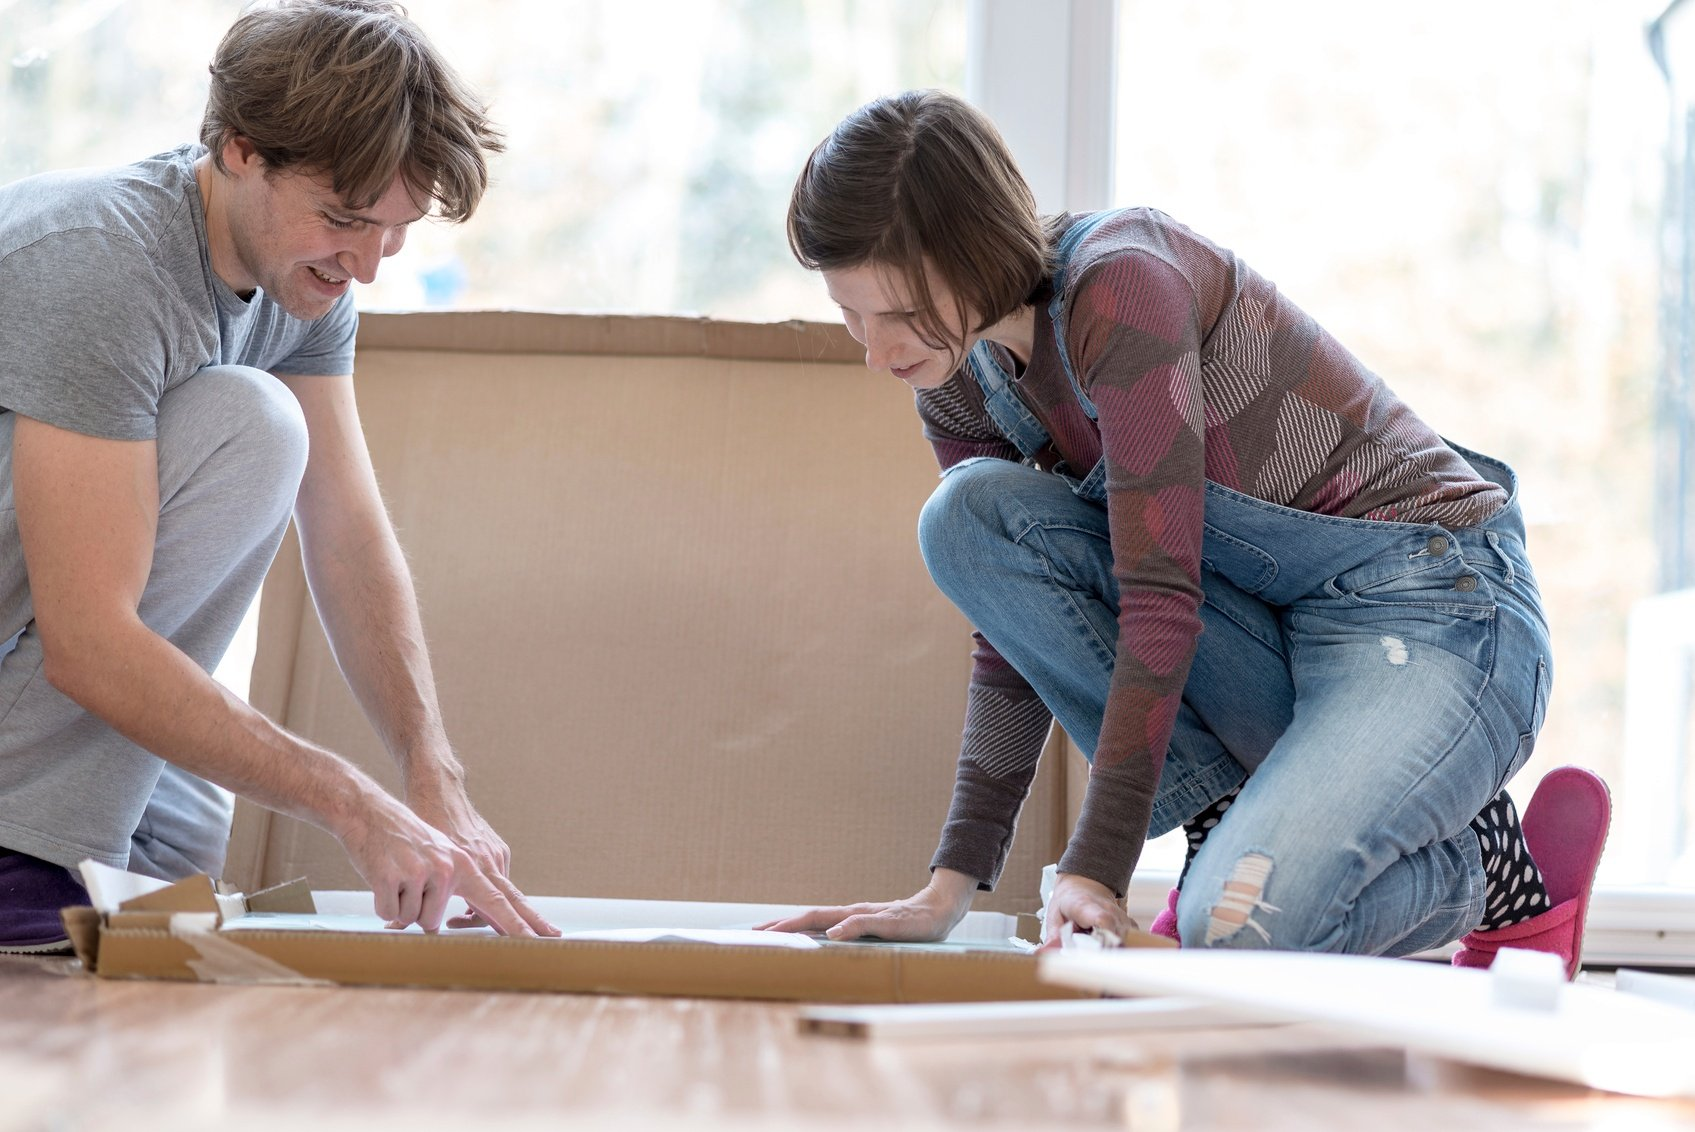 5 Things to think about before you renovate